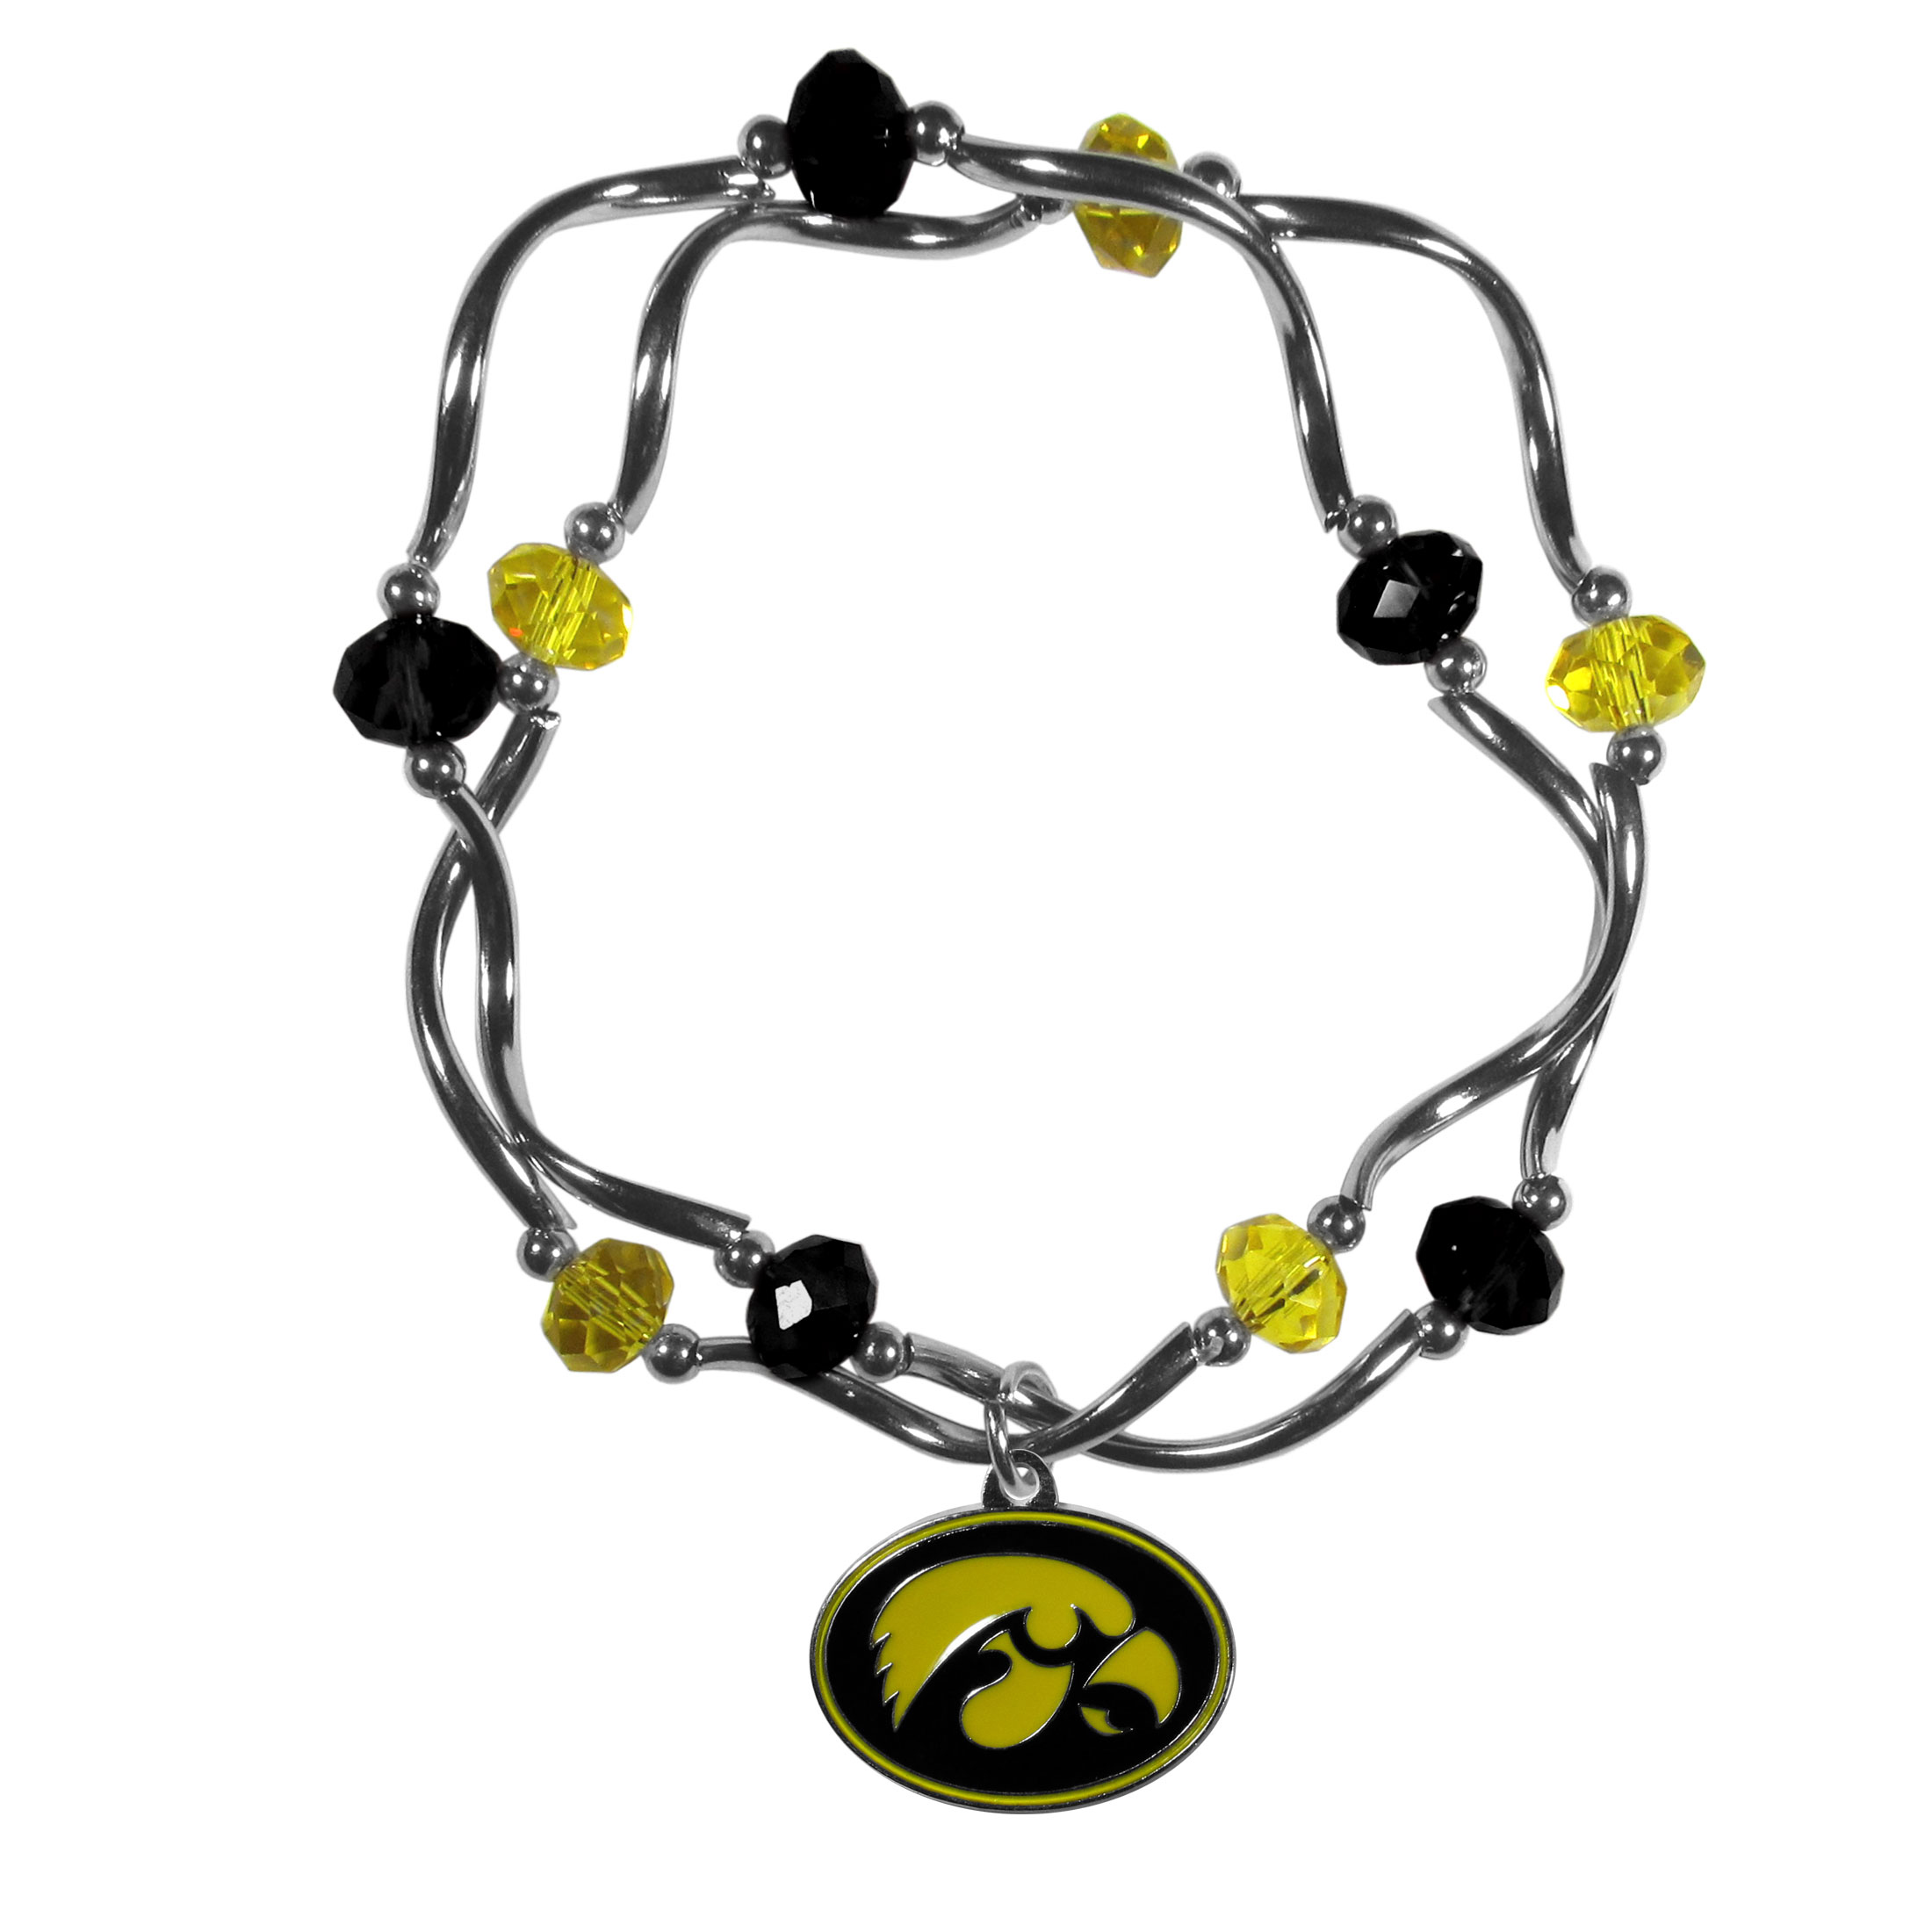 Iowa Hawkeyes Crystal Bead Bracelet - This delicate bead bracelet has eye-catching team colored beads that are strung on 2 stretch cords that provide a comfortable and easy fit. The crystals are separated by beautiful helix beads in high polish chrome for a truly designer inspired look. The 2 strands of beads intertwine for a fun and stylish bracelet. This chic accessory is finished off with a Iowa Hawkeyes team charm that has expertly carved detail and an enameled color finish. A contemporary look to thrill any female sports fan. Whether this a gift for yourself or someone special you cannot miss with this trend-setting fashion bracelet.